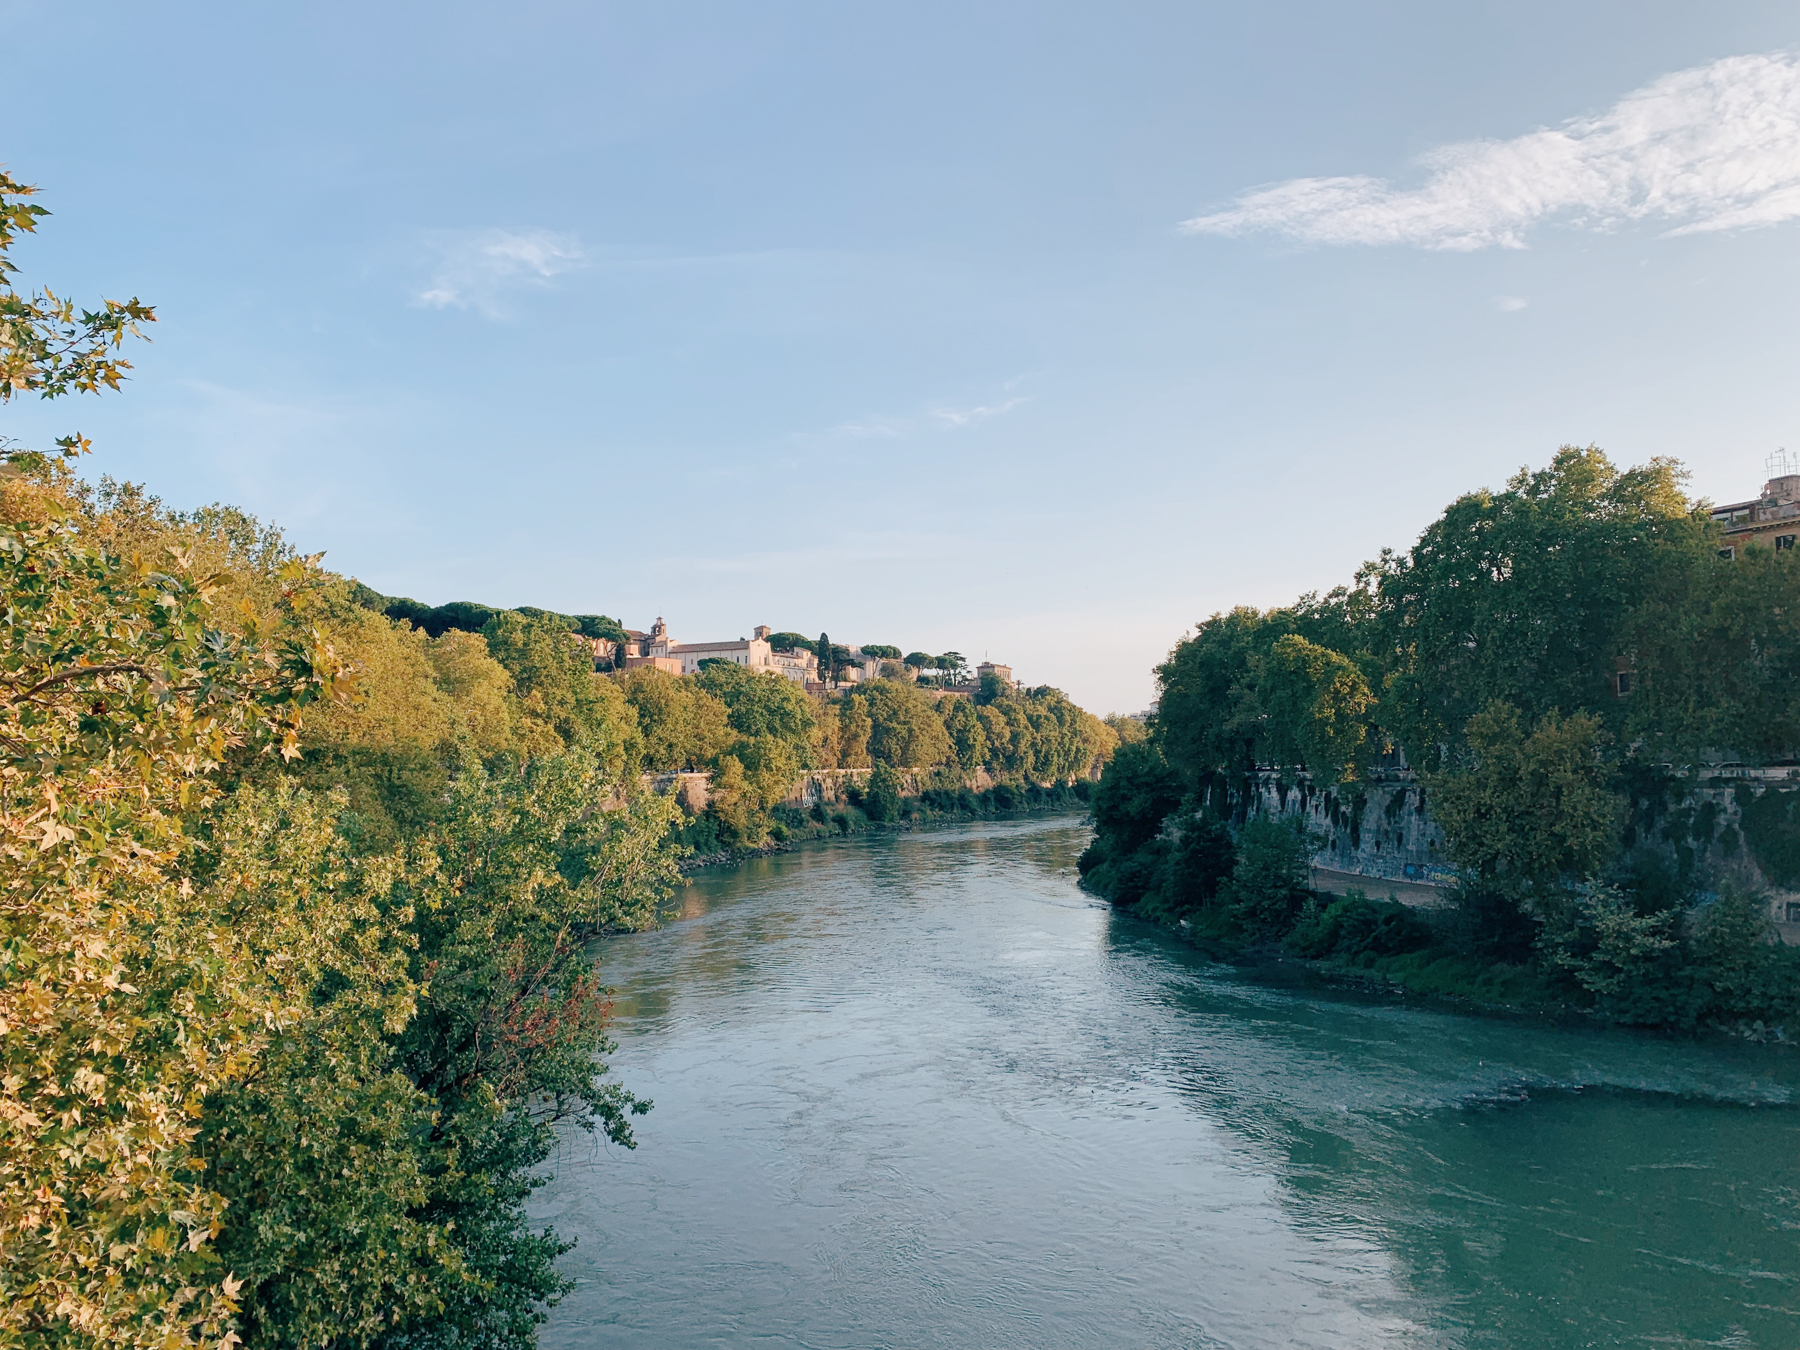 The River Tiber.